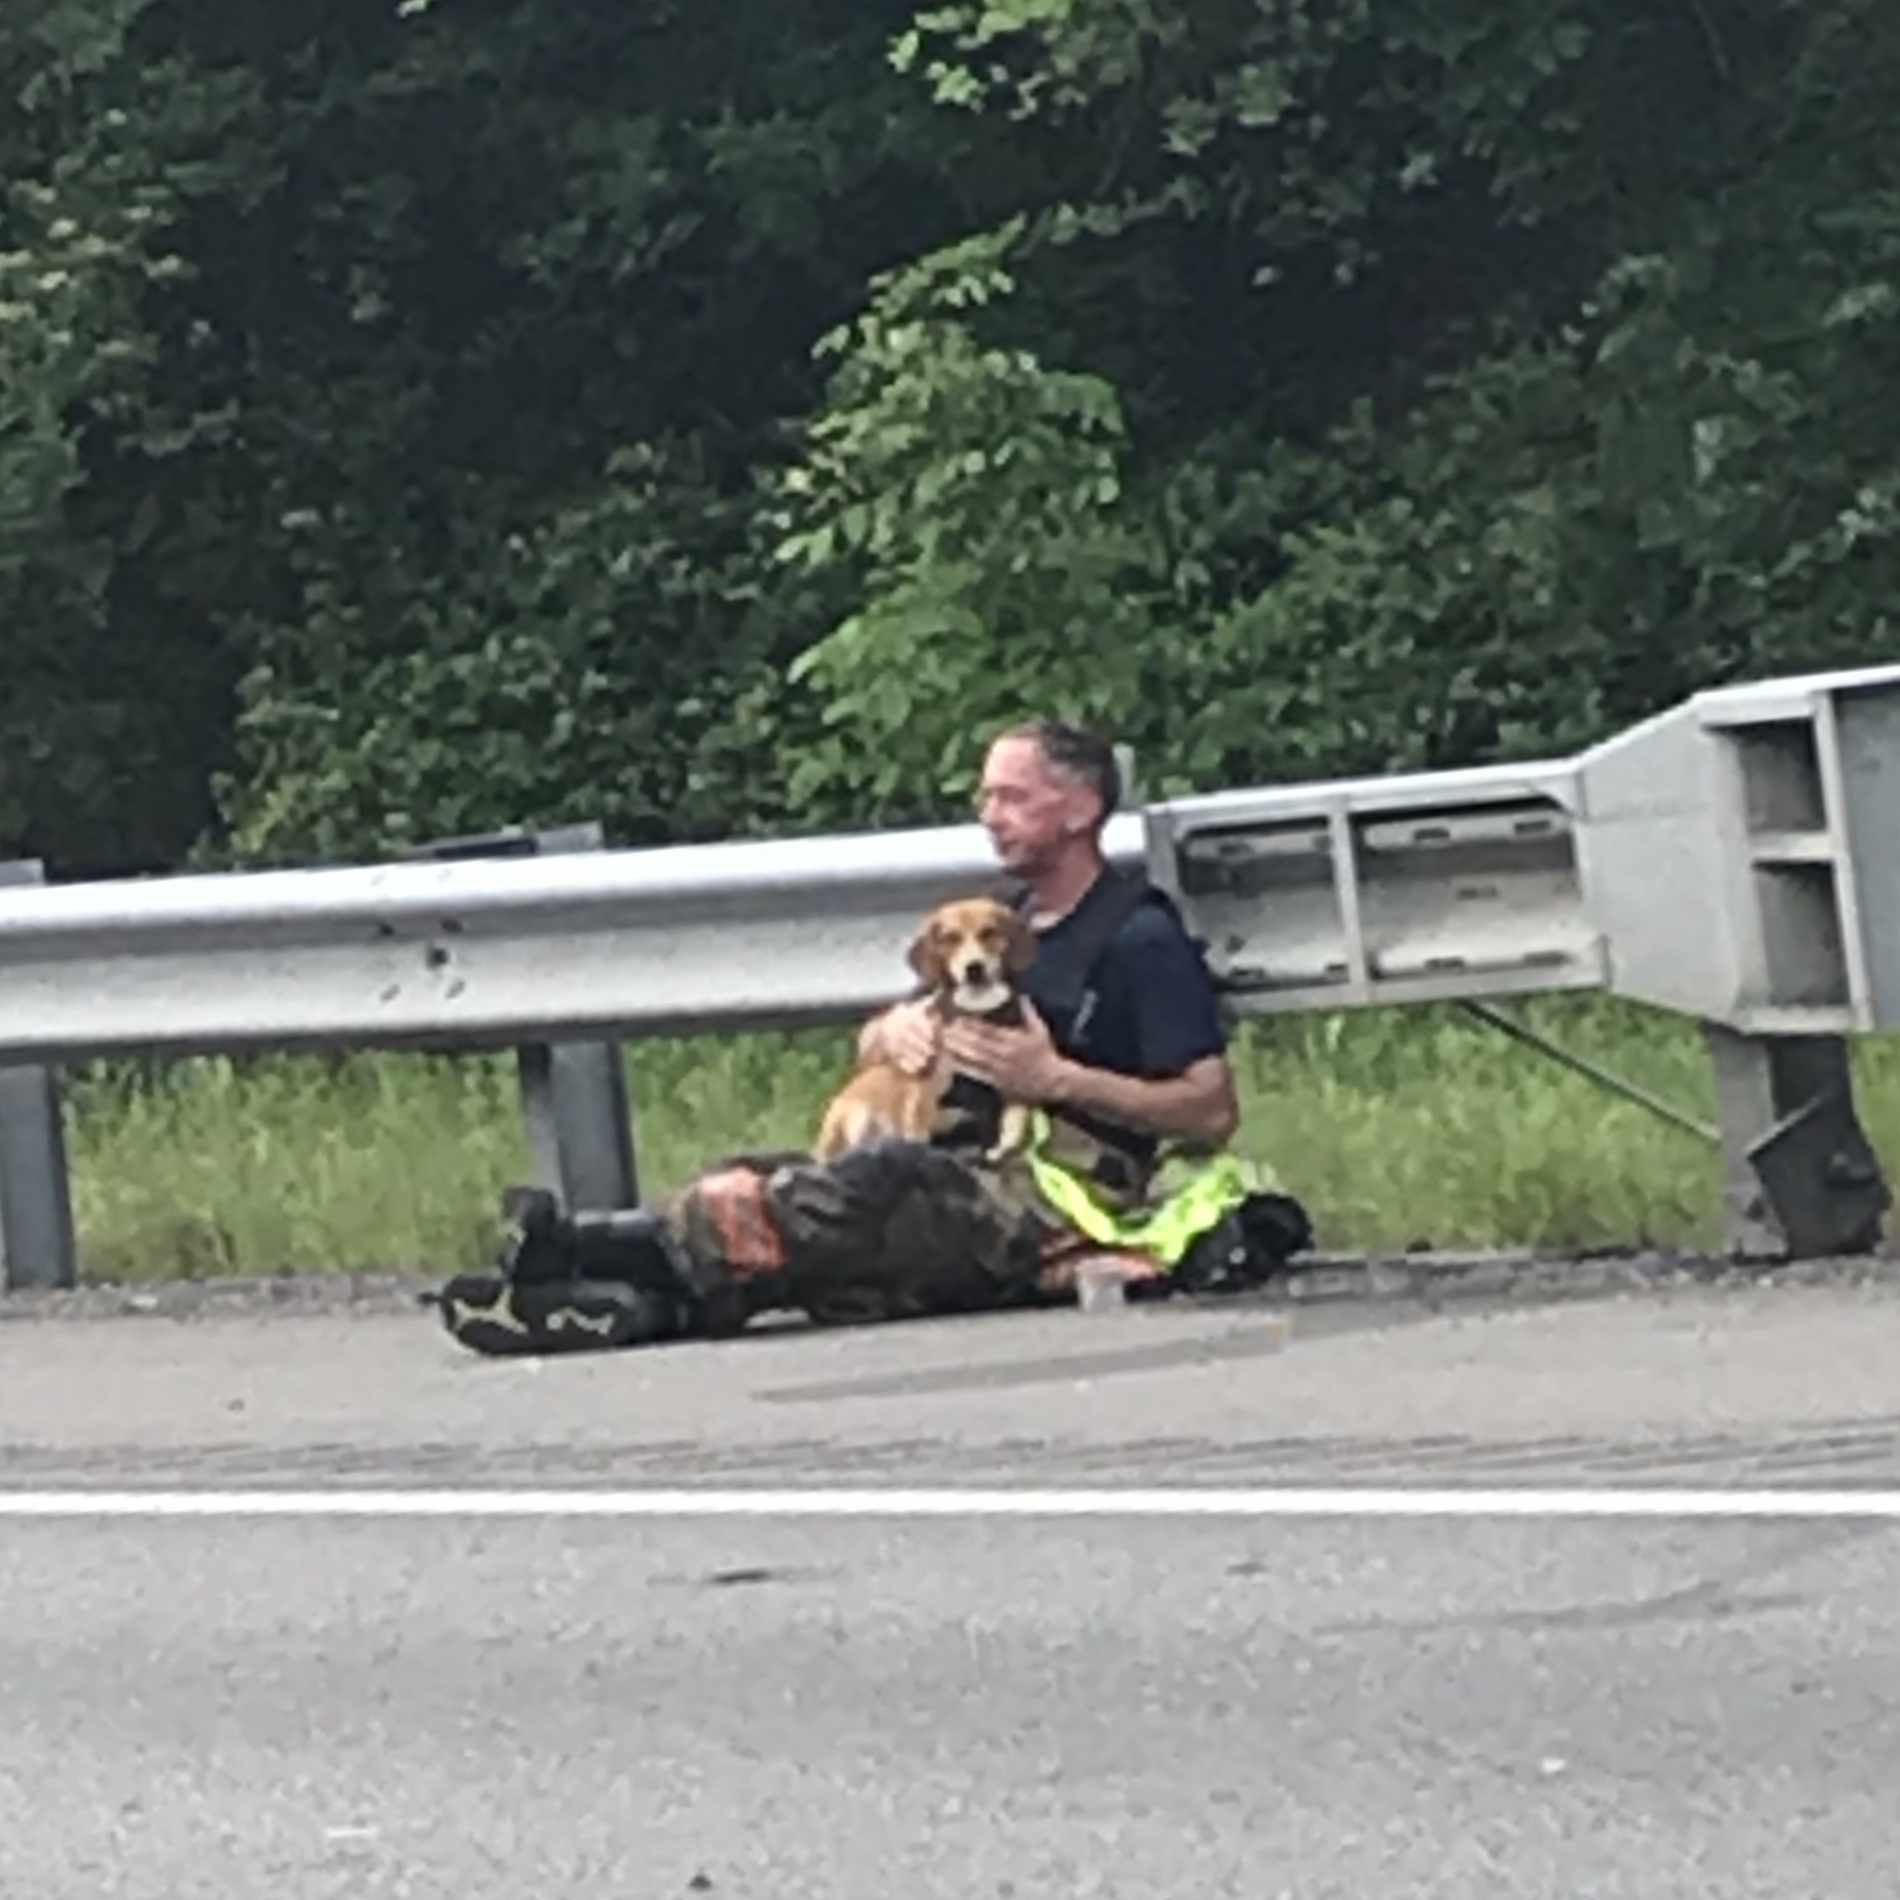 Kentucky fire marshal Bill Compton comforting Lucky the dog on road after accident